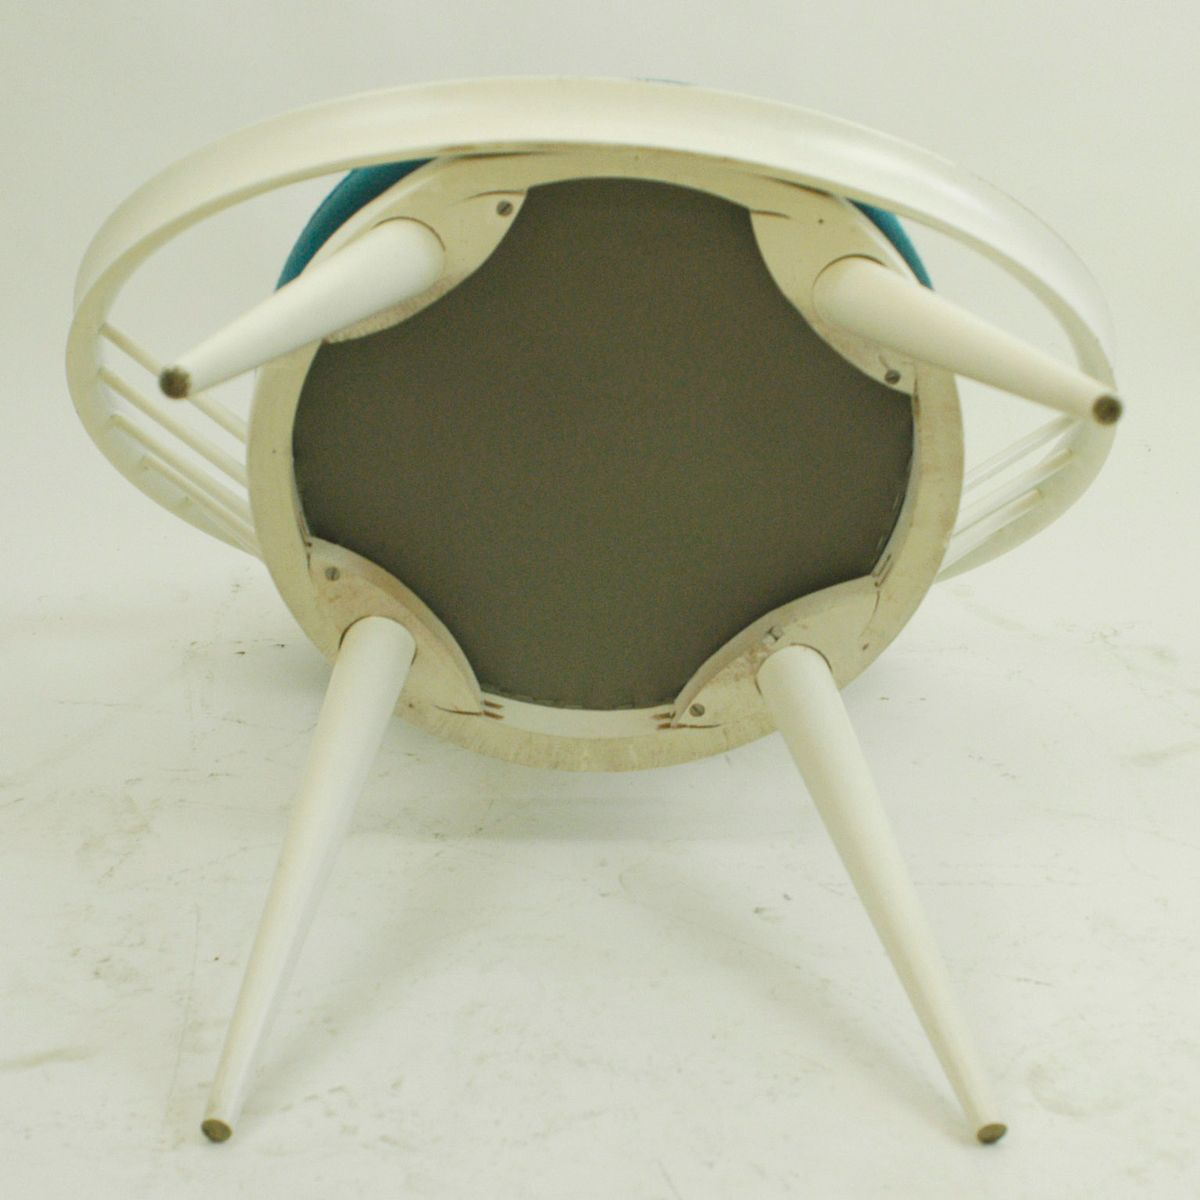 co chairs circle 1950s lawn white lacquered chair by yngve ekström 1960s for